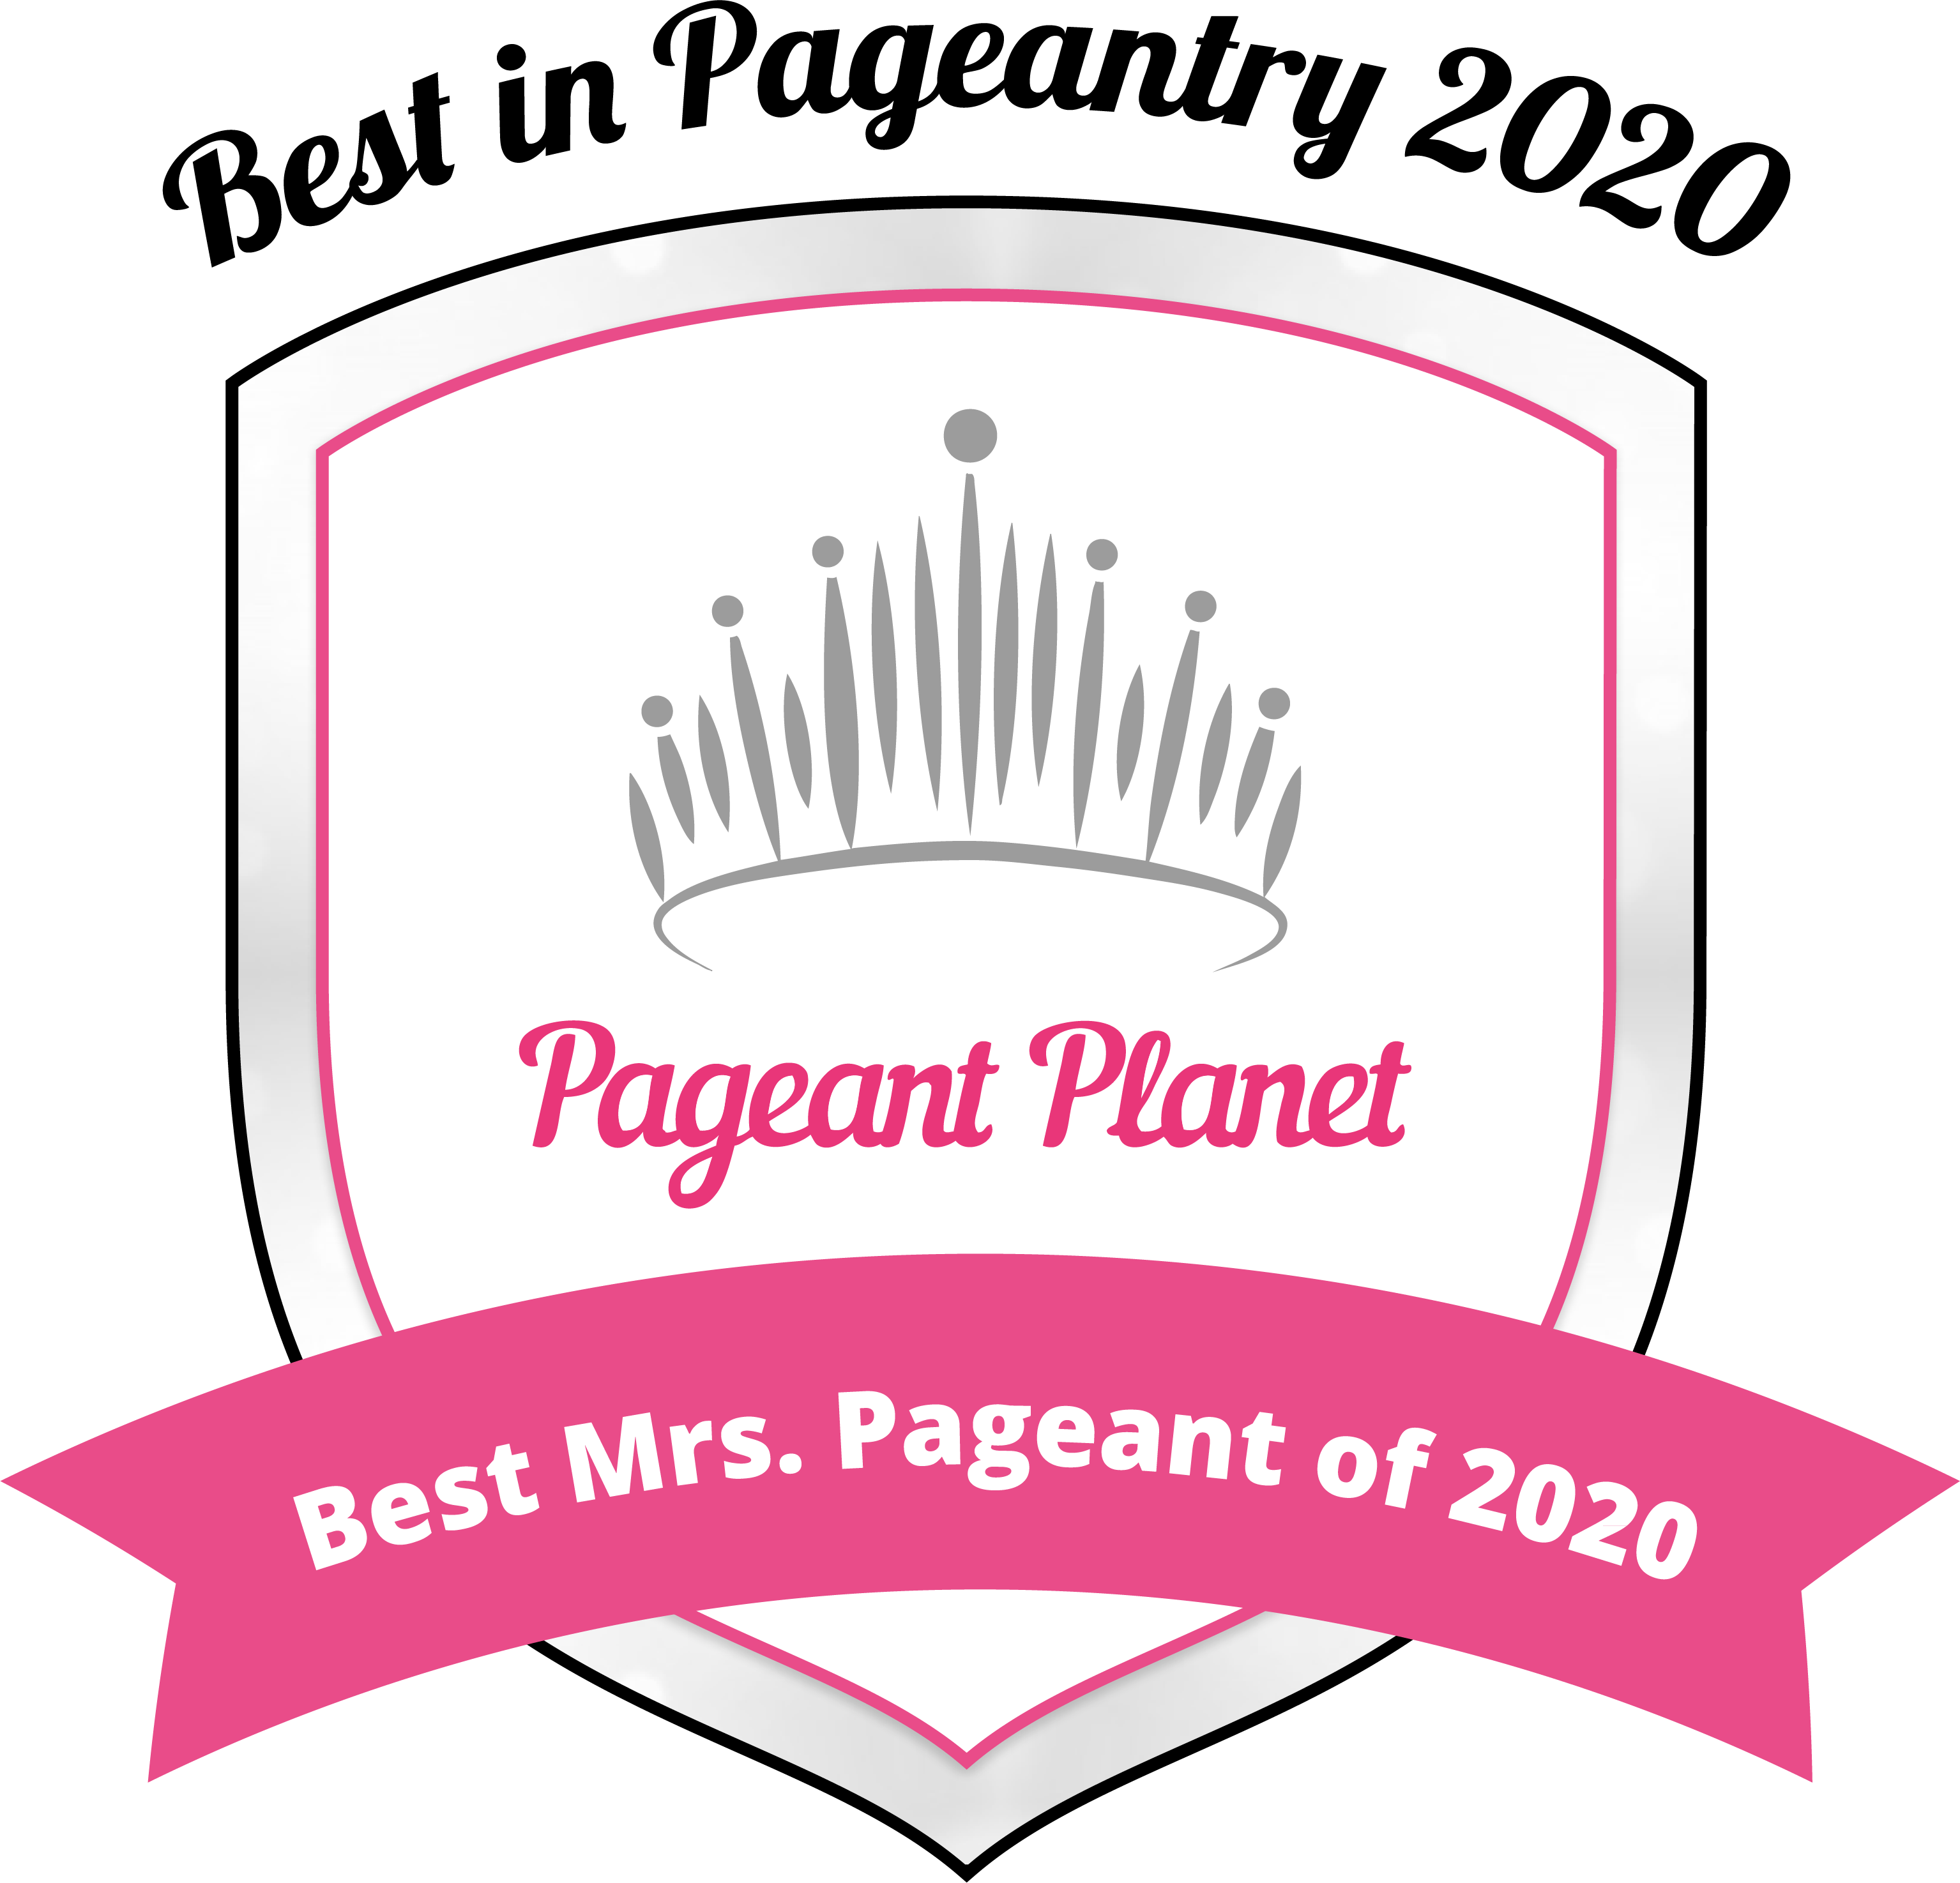 Best Mrs. Pageant of 2020